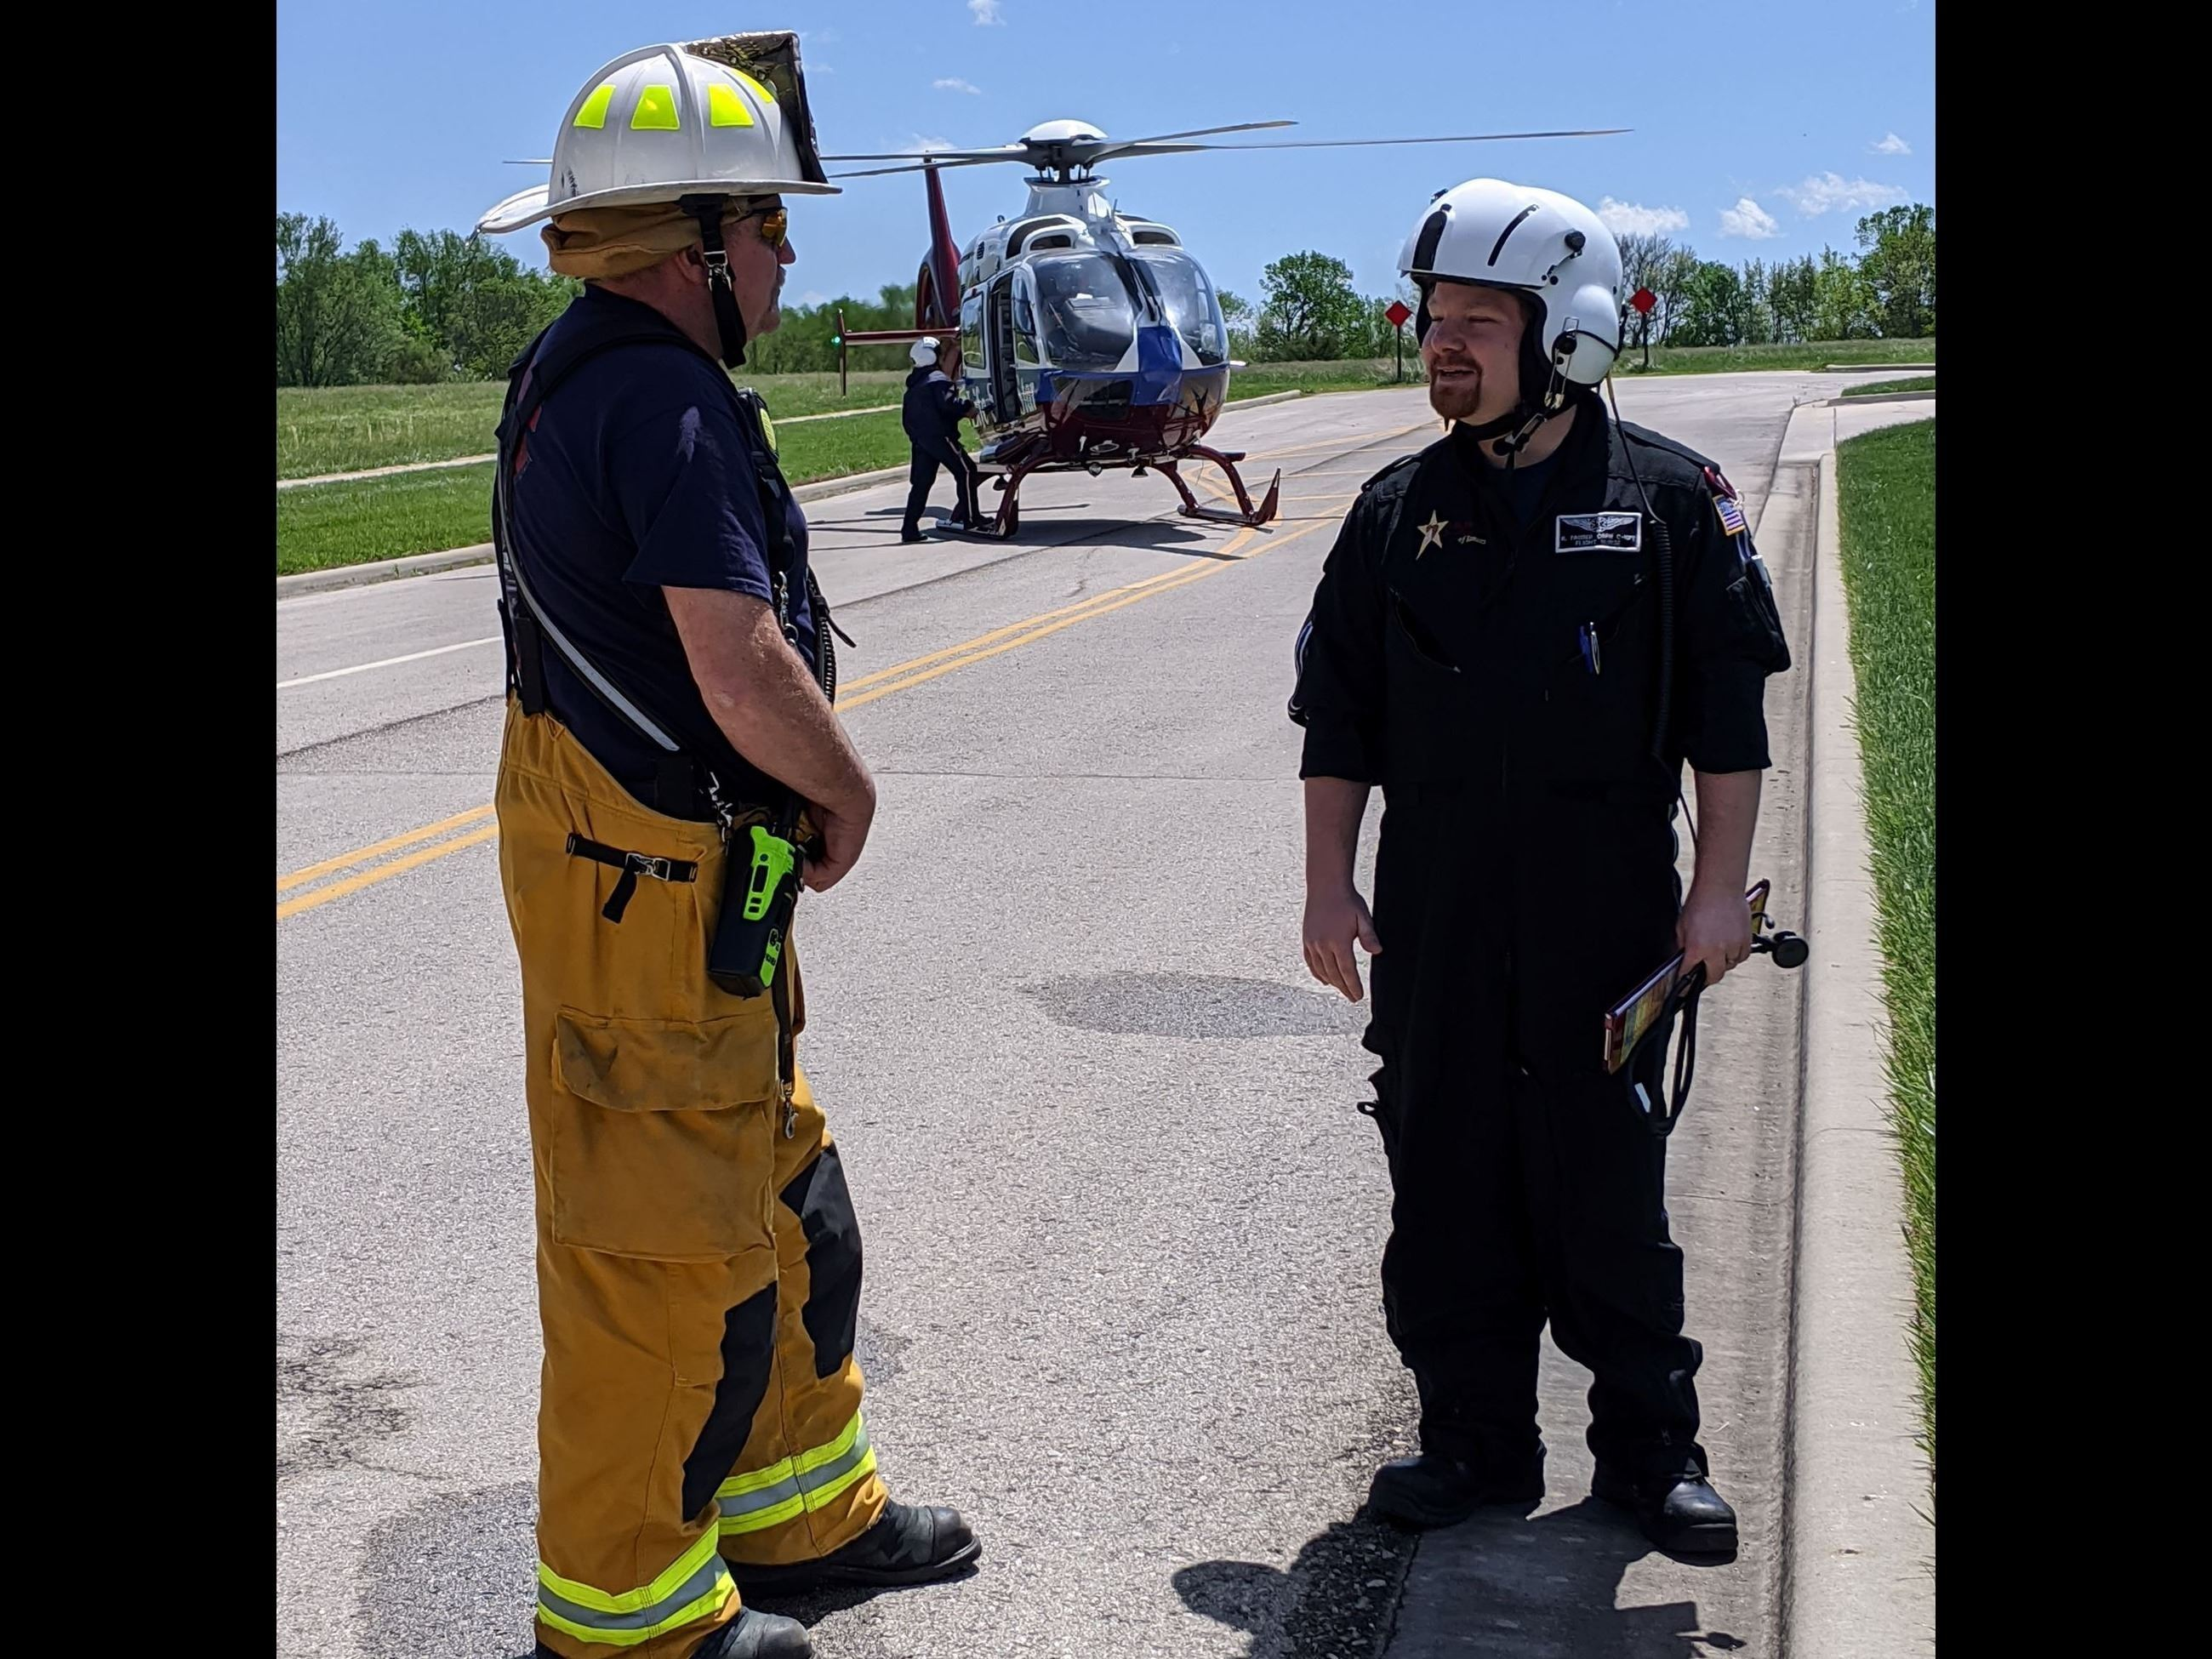 Chief Rittinghouse and the Life Star 3 pilot prepare for a joint training exercise.